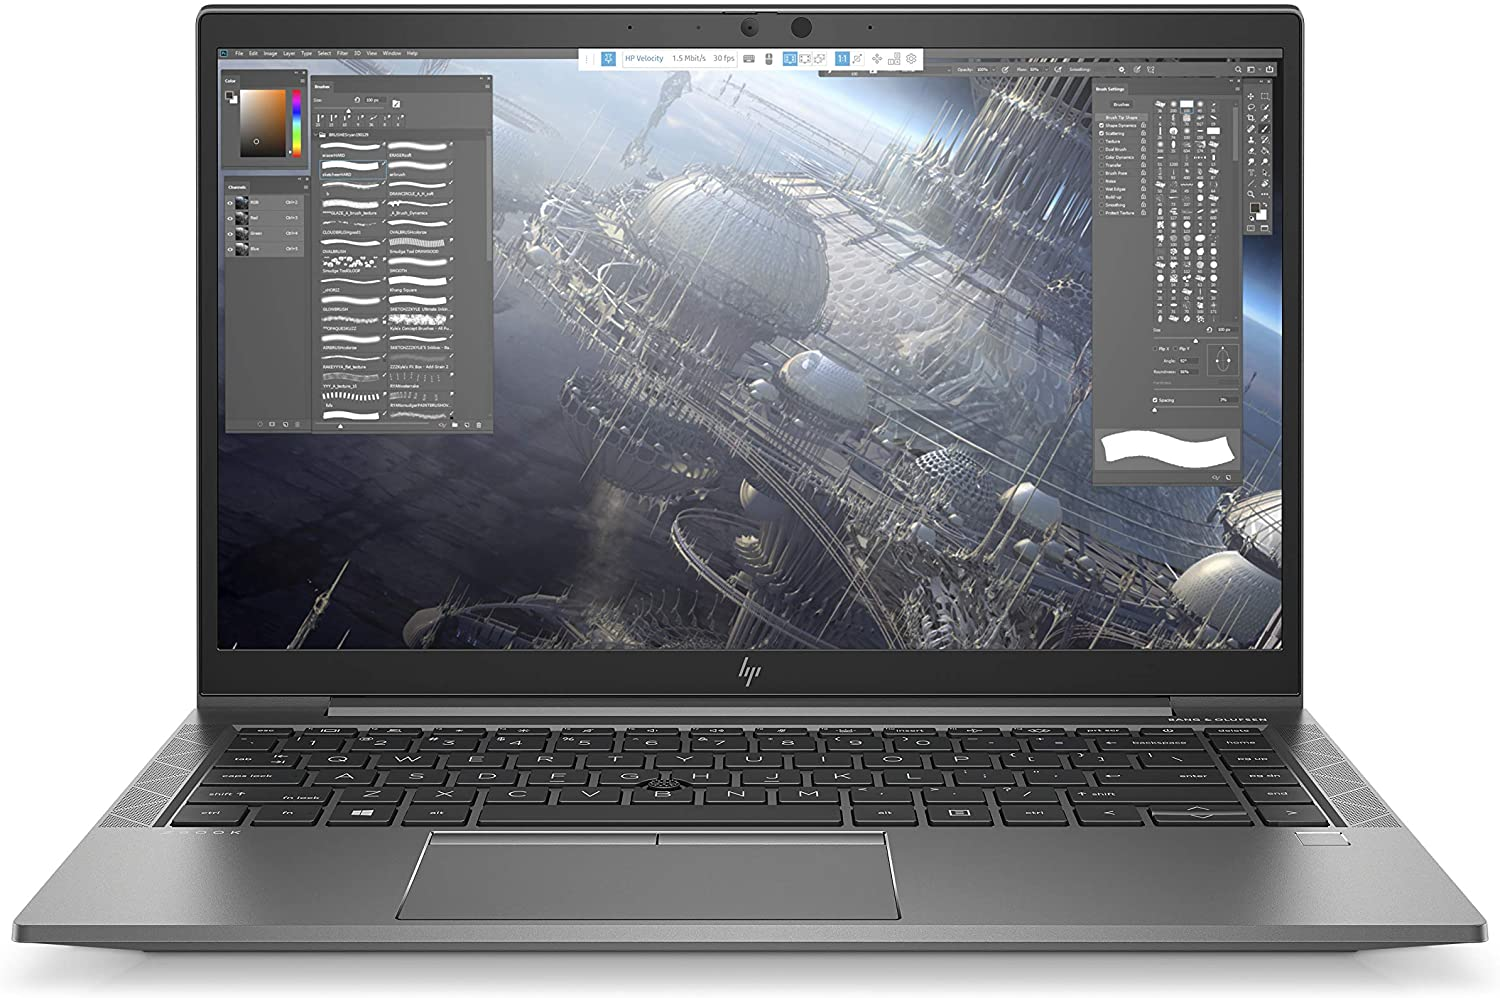 HP ZBook Firefly 14 G7 Workstation Core i7-10610U, i7-10510U, i7-10810U